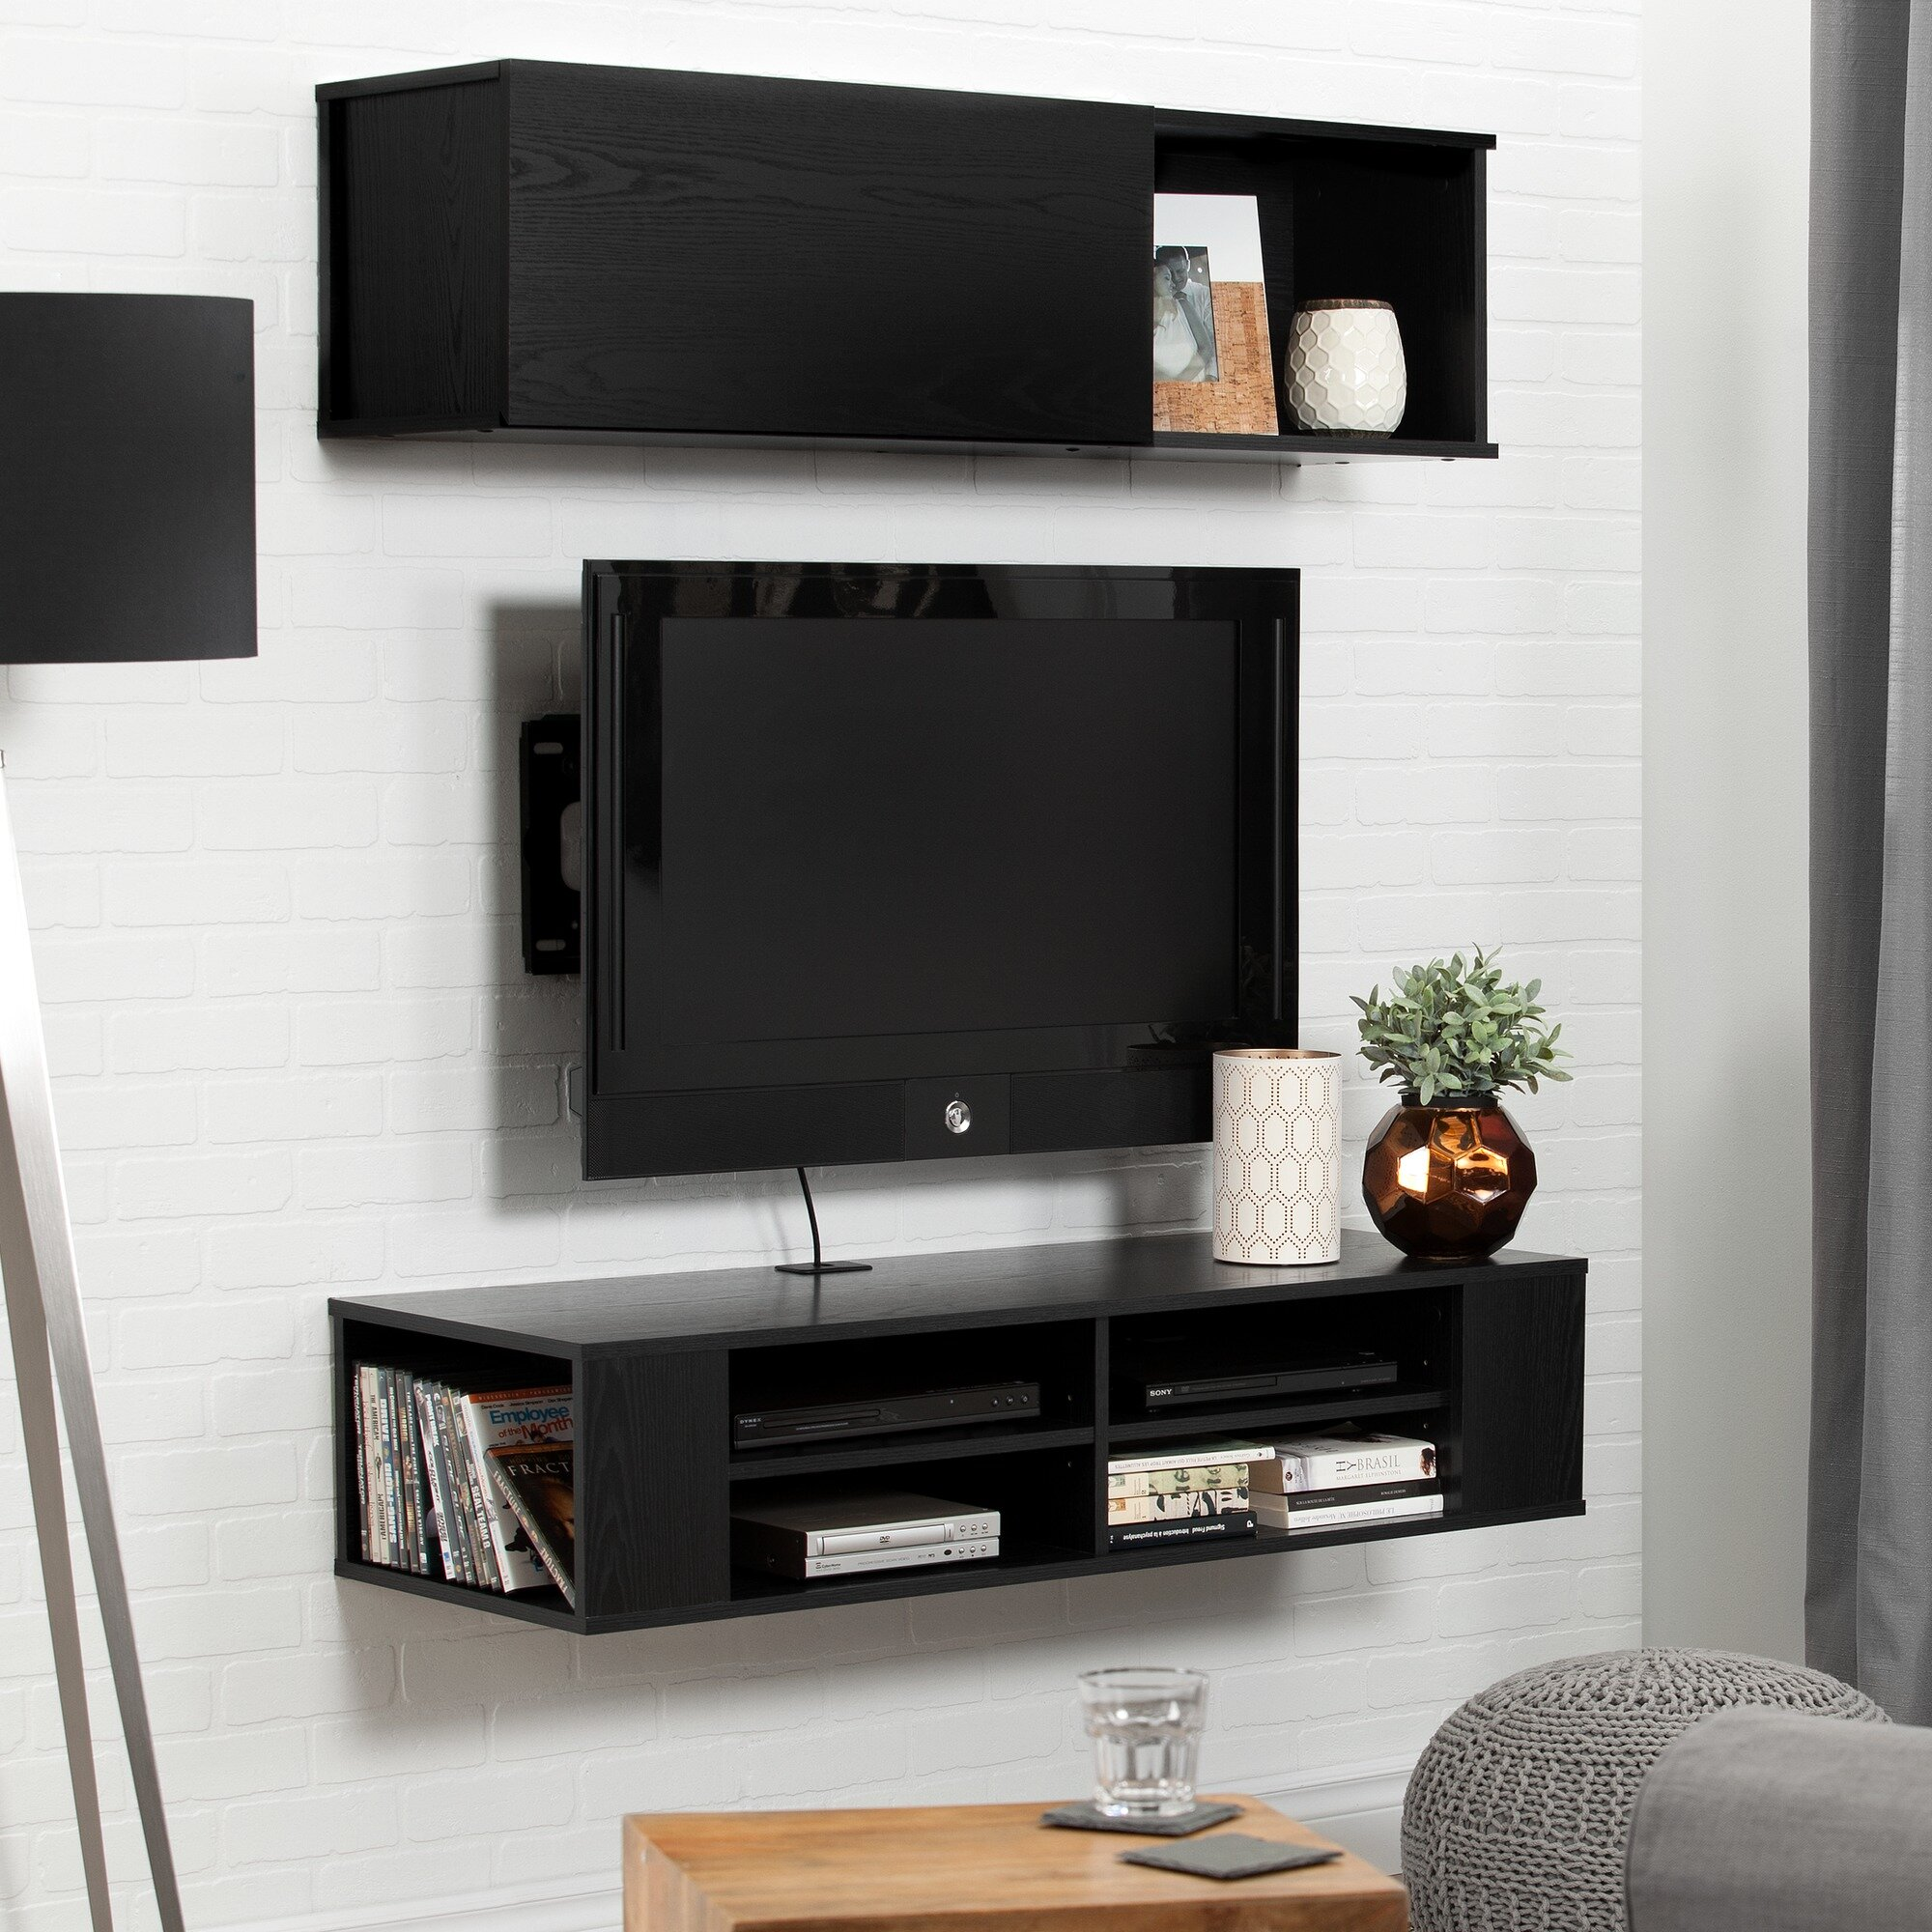 south shore city life wall mounted 48 39 39 tv stand. Black Bedroom Furniture Sets. Home Design Ideas